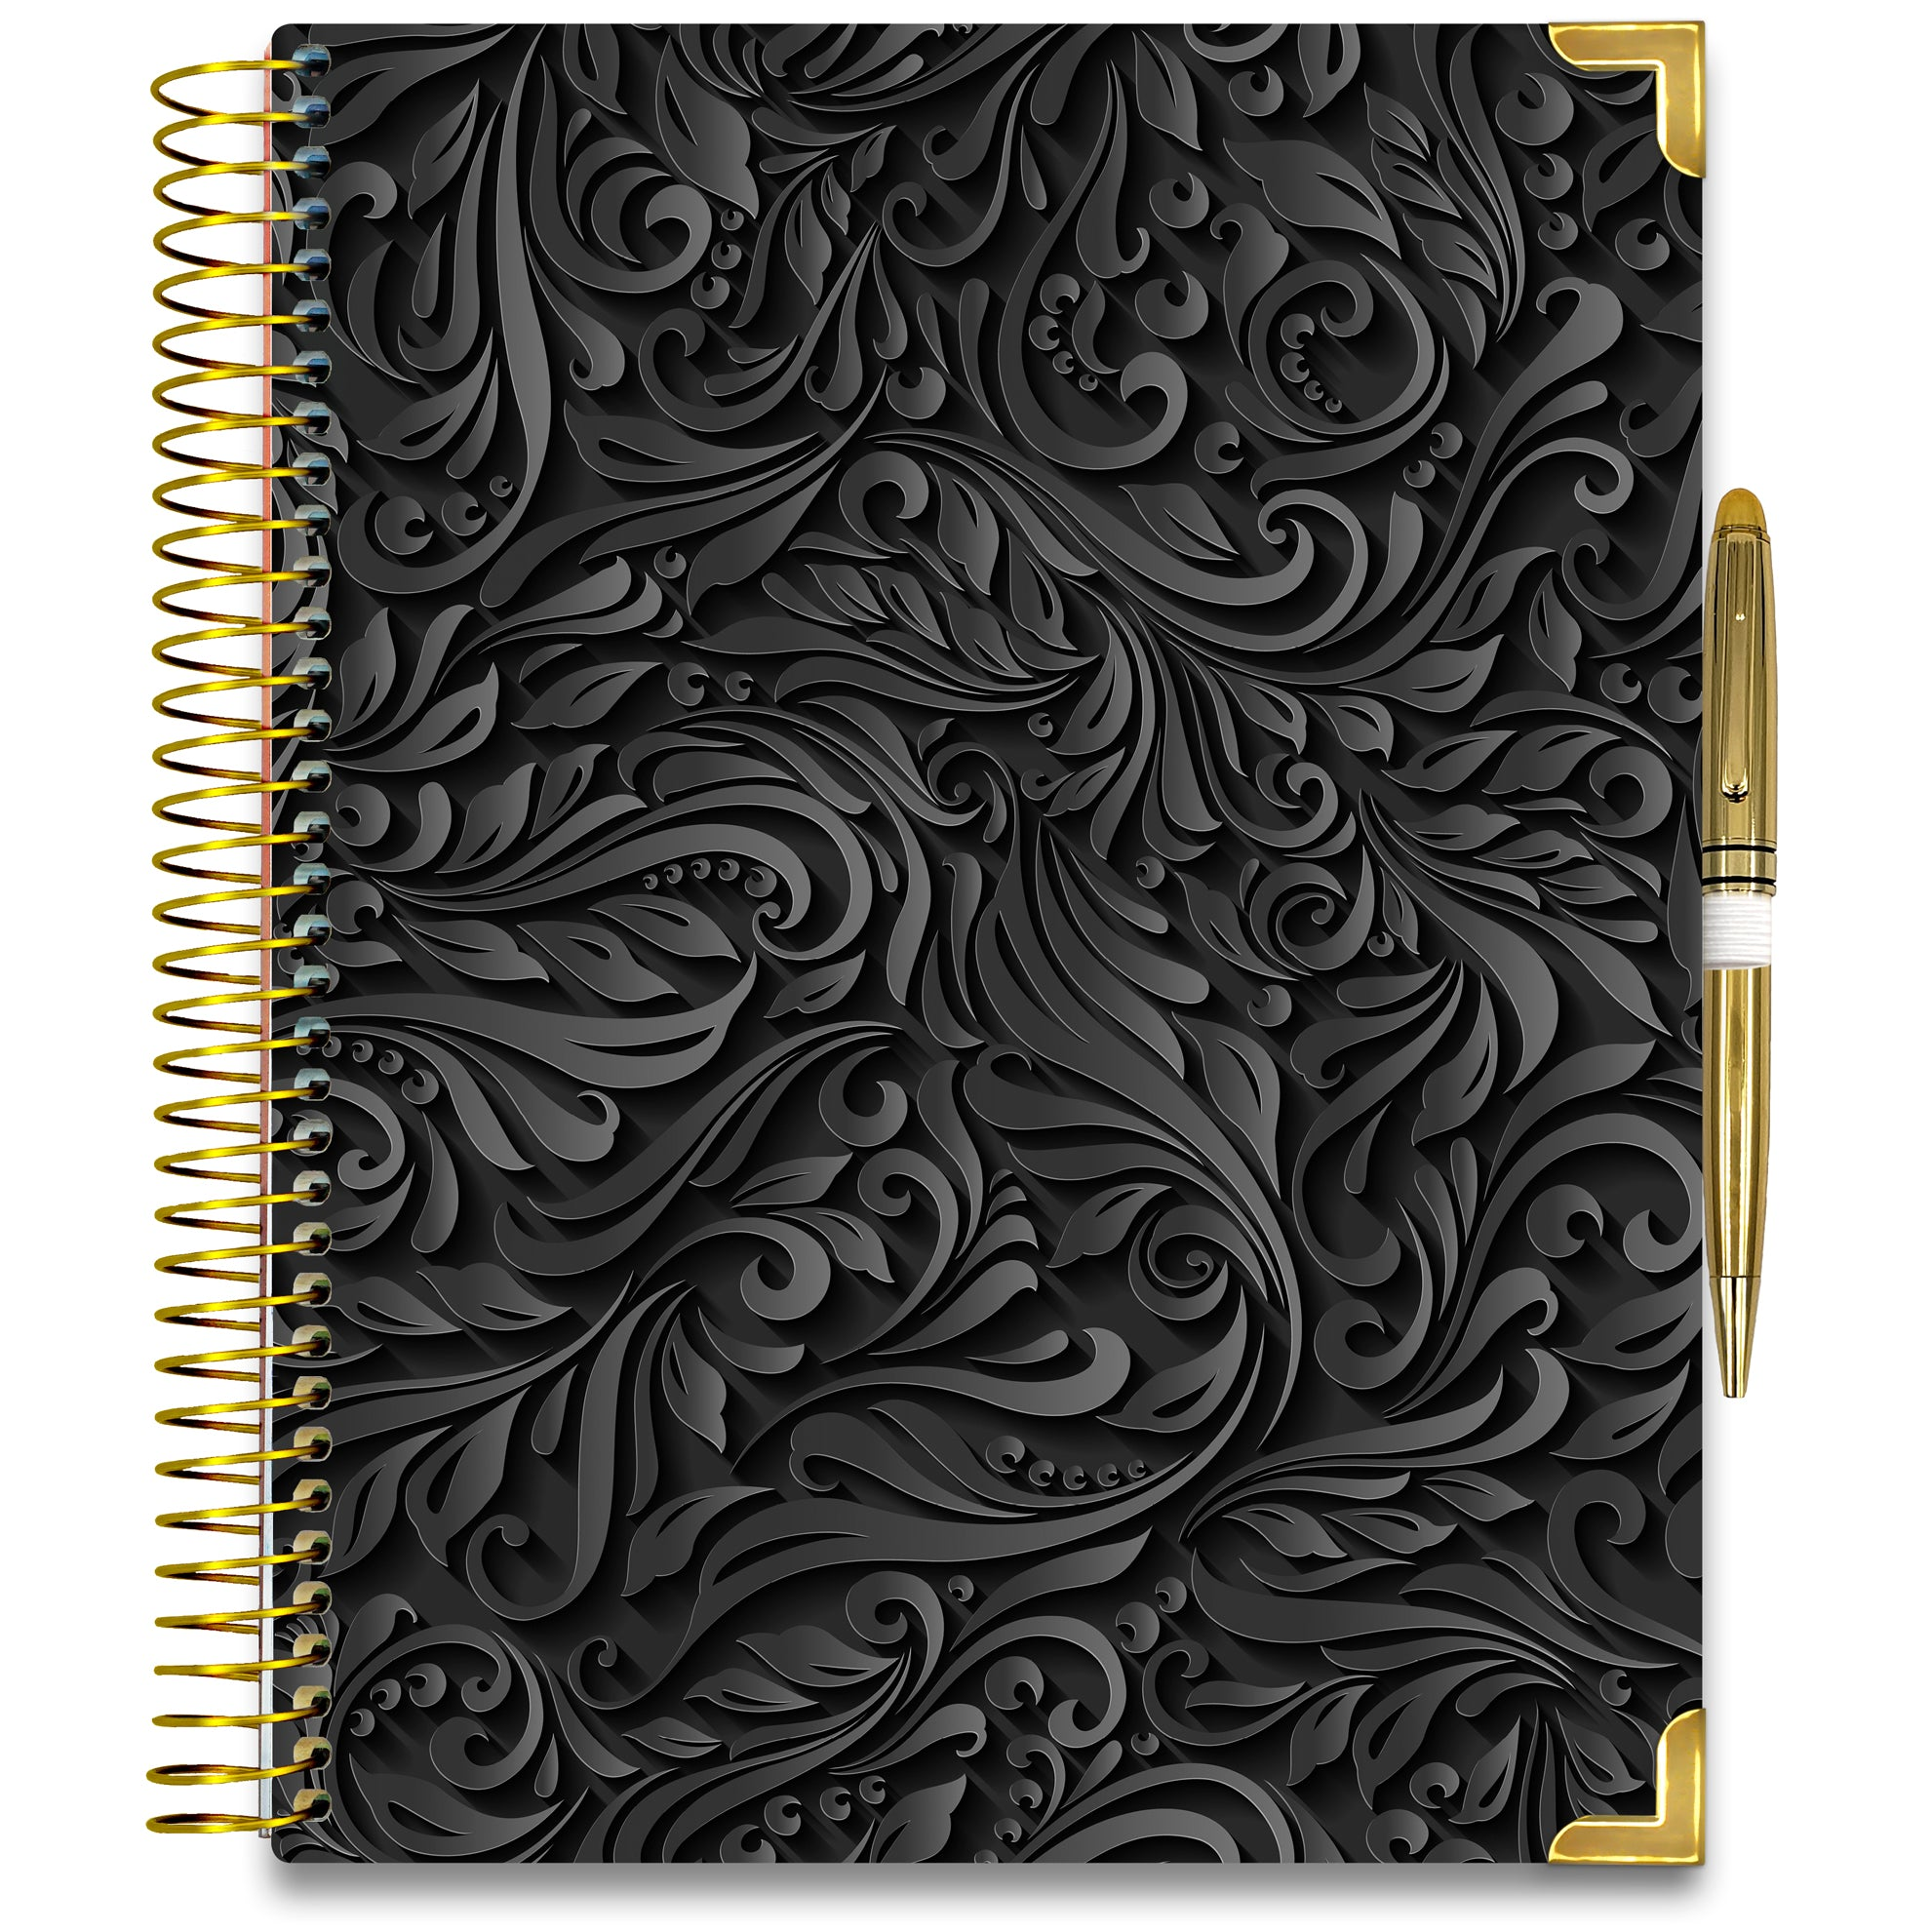 NEW: April 2020-2021 Planner - Gold Edition - Black Floral-Office Product-Tools4Wisdom